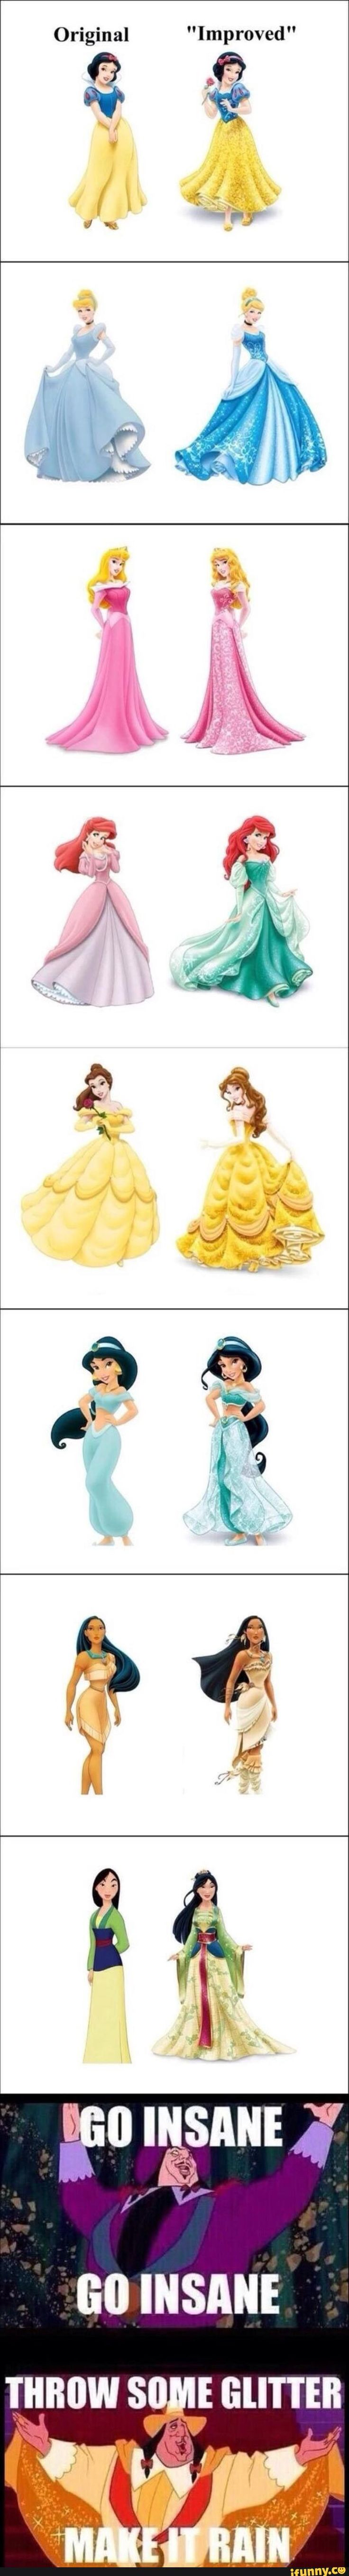 disney, princesses, improved, add, glitter